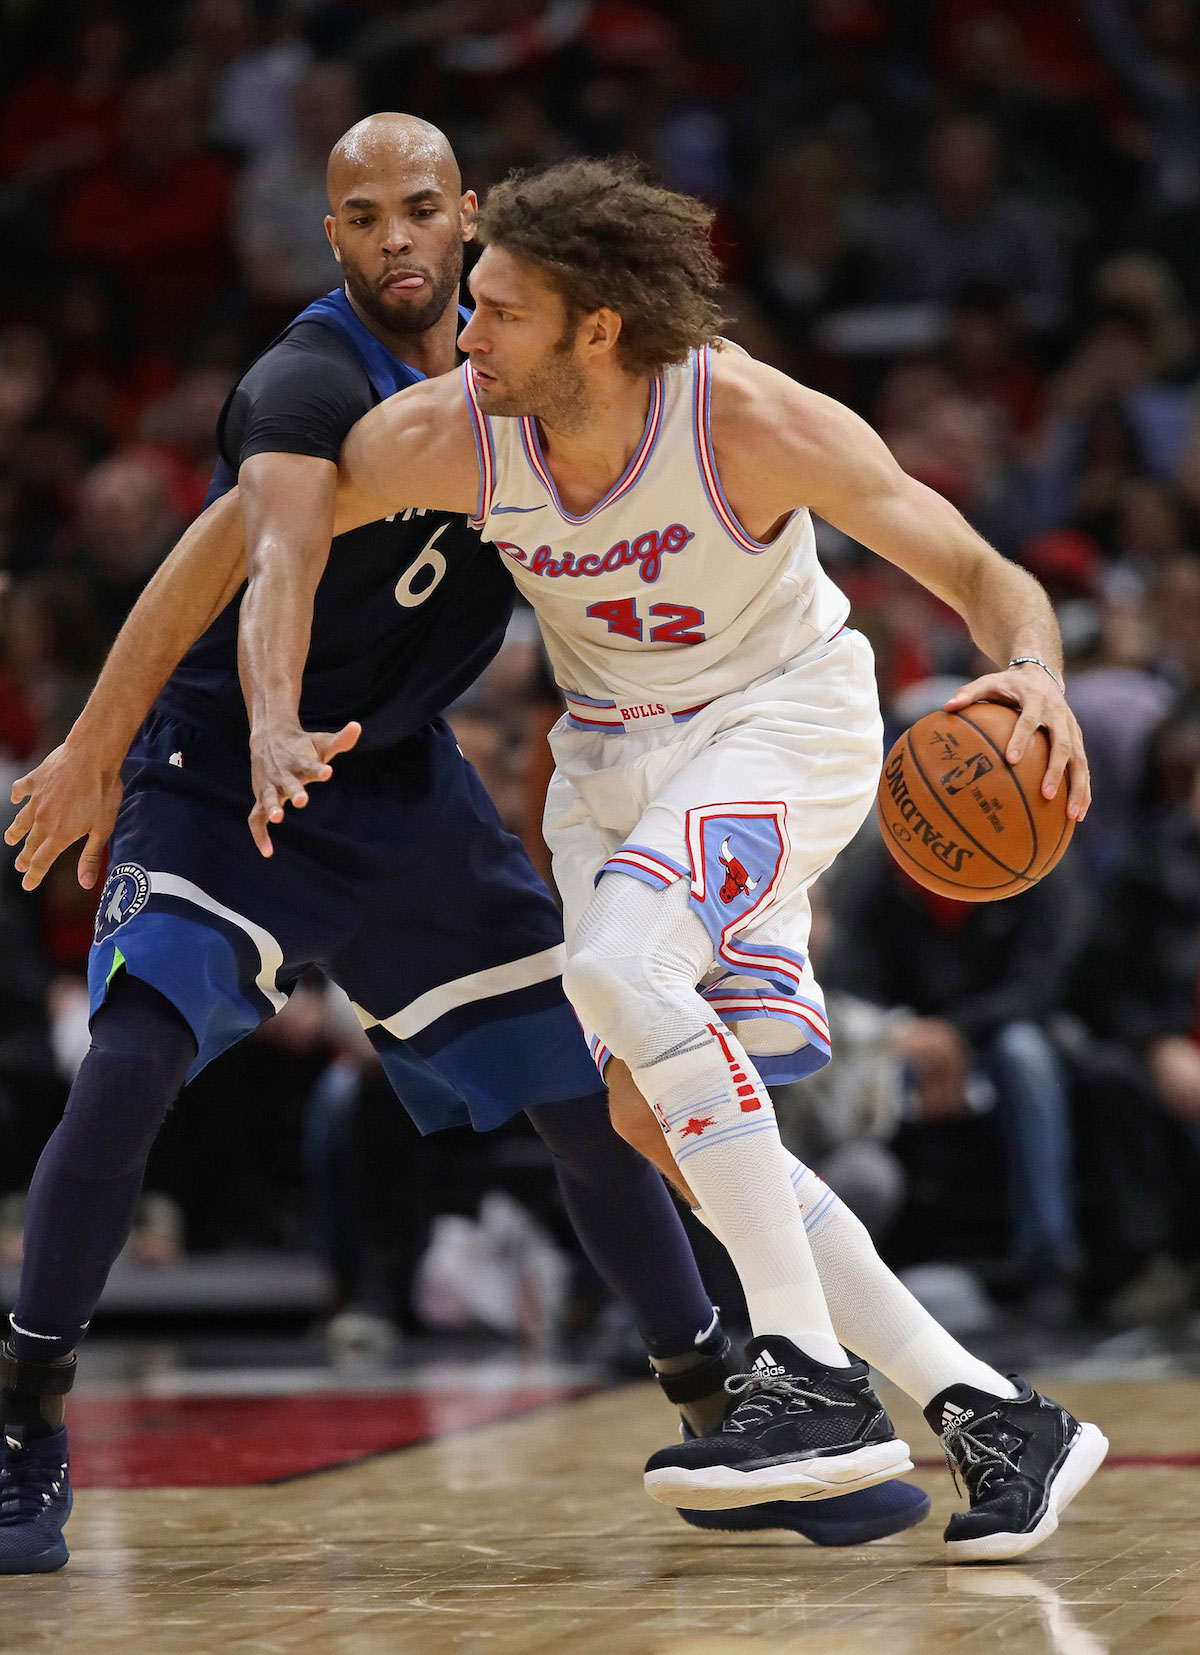 Robin Lopez #42 of the Chicago Bulls moves against Taj Gibson #67 of the Minnesota Timberwolves at the United Center on February 9, 2018 in Chicago, Illinois.